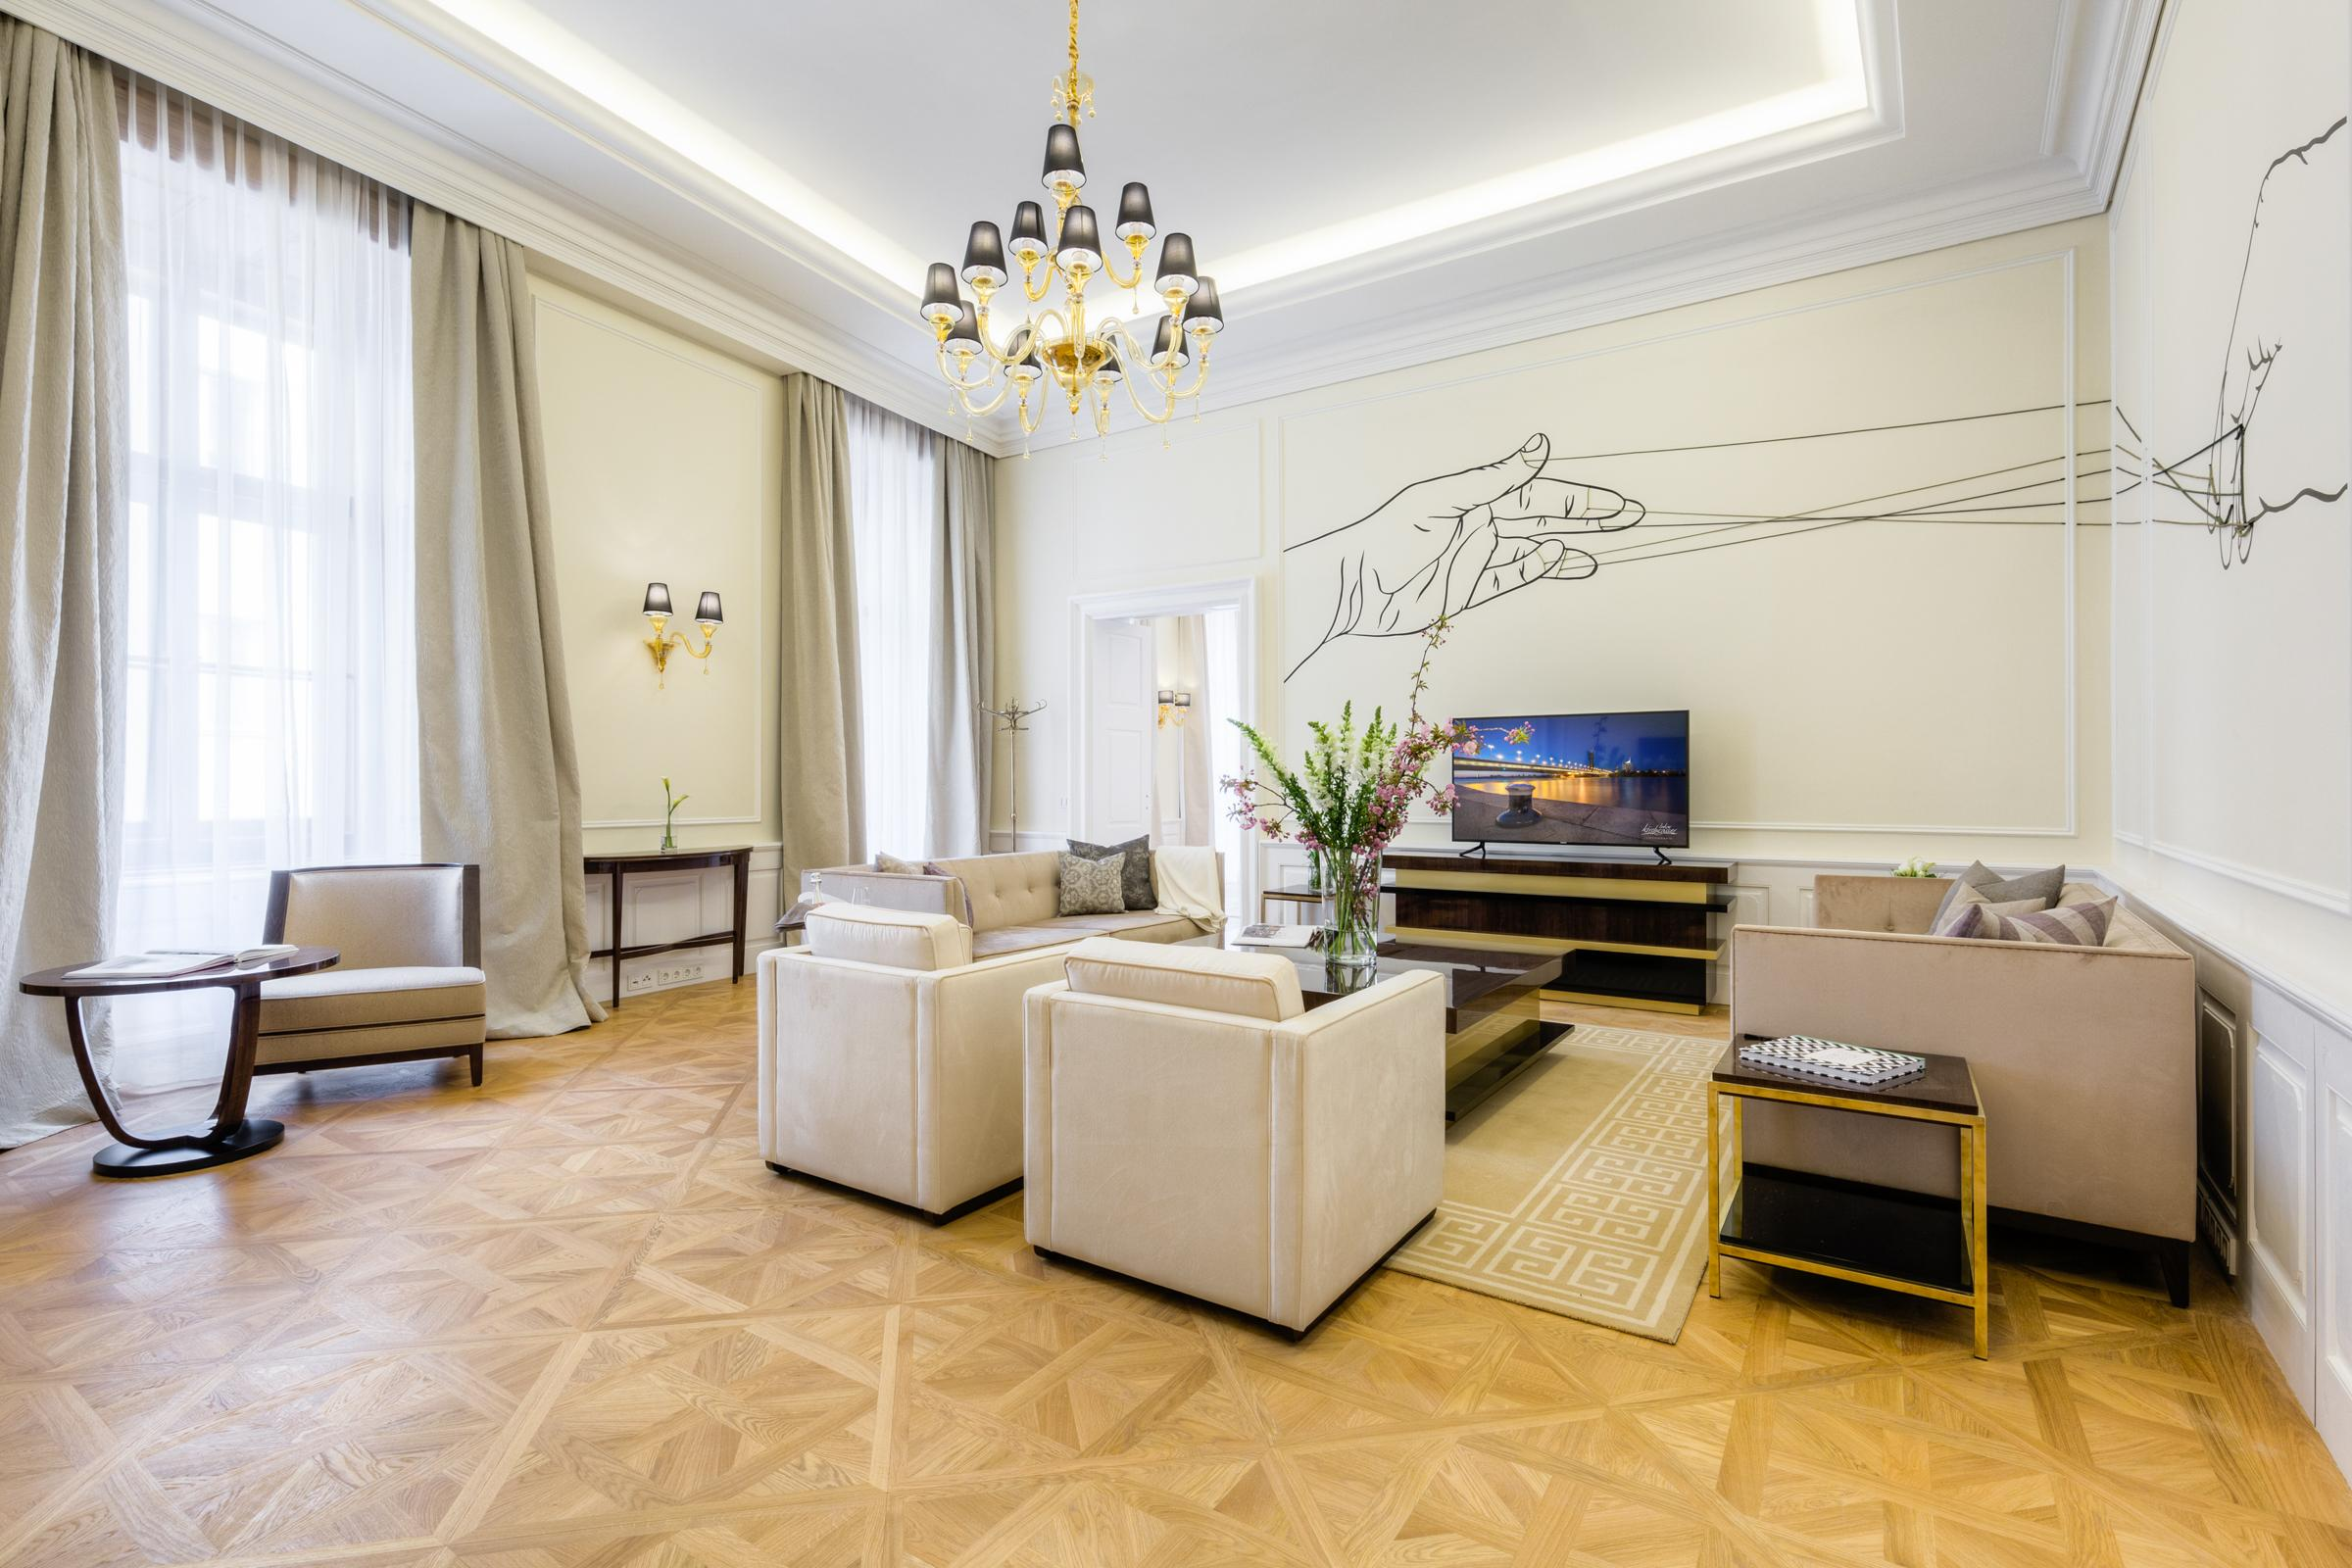 KirchgasserPhotography Luxury Apartments Residenz Wollzeile Interieurfotografie 07 2400px